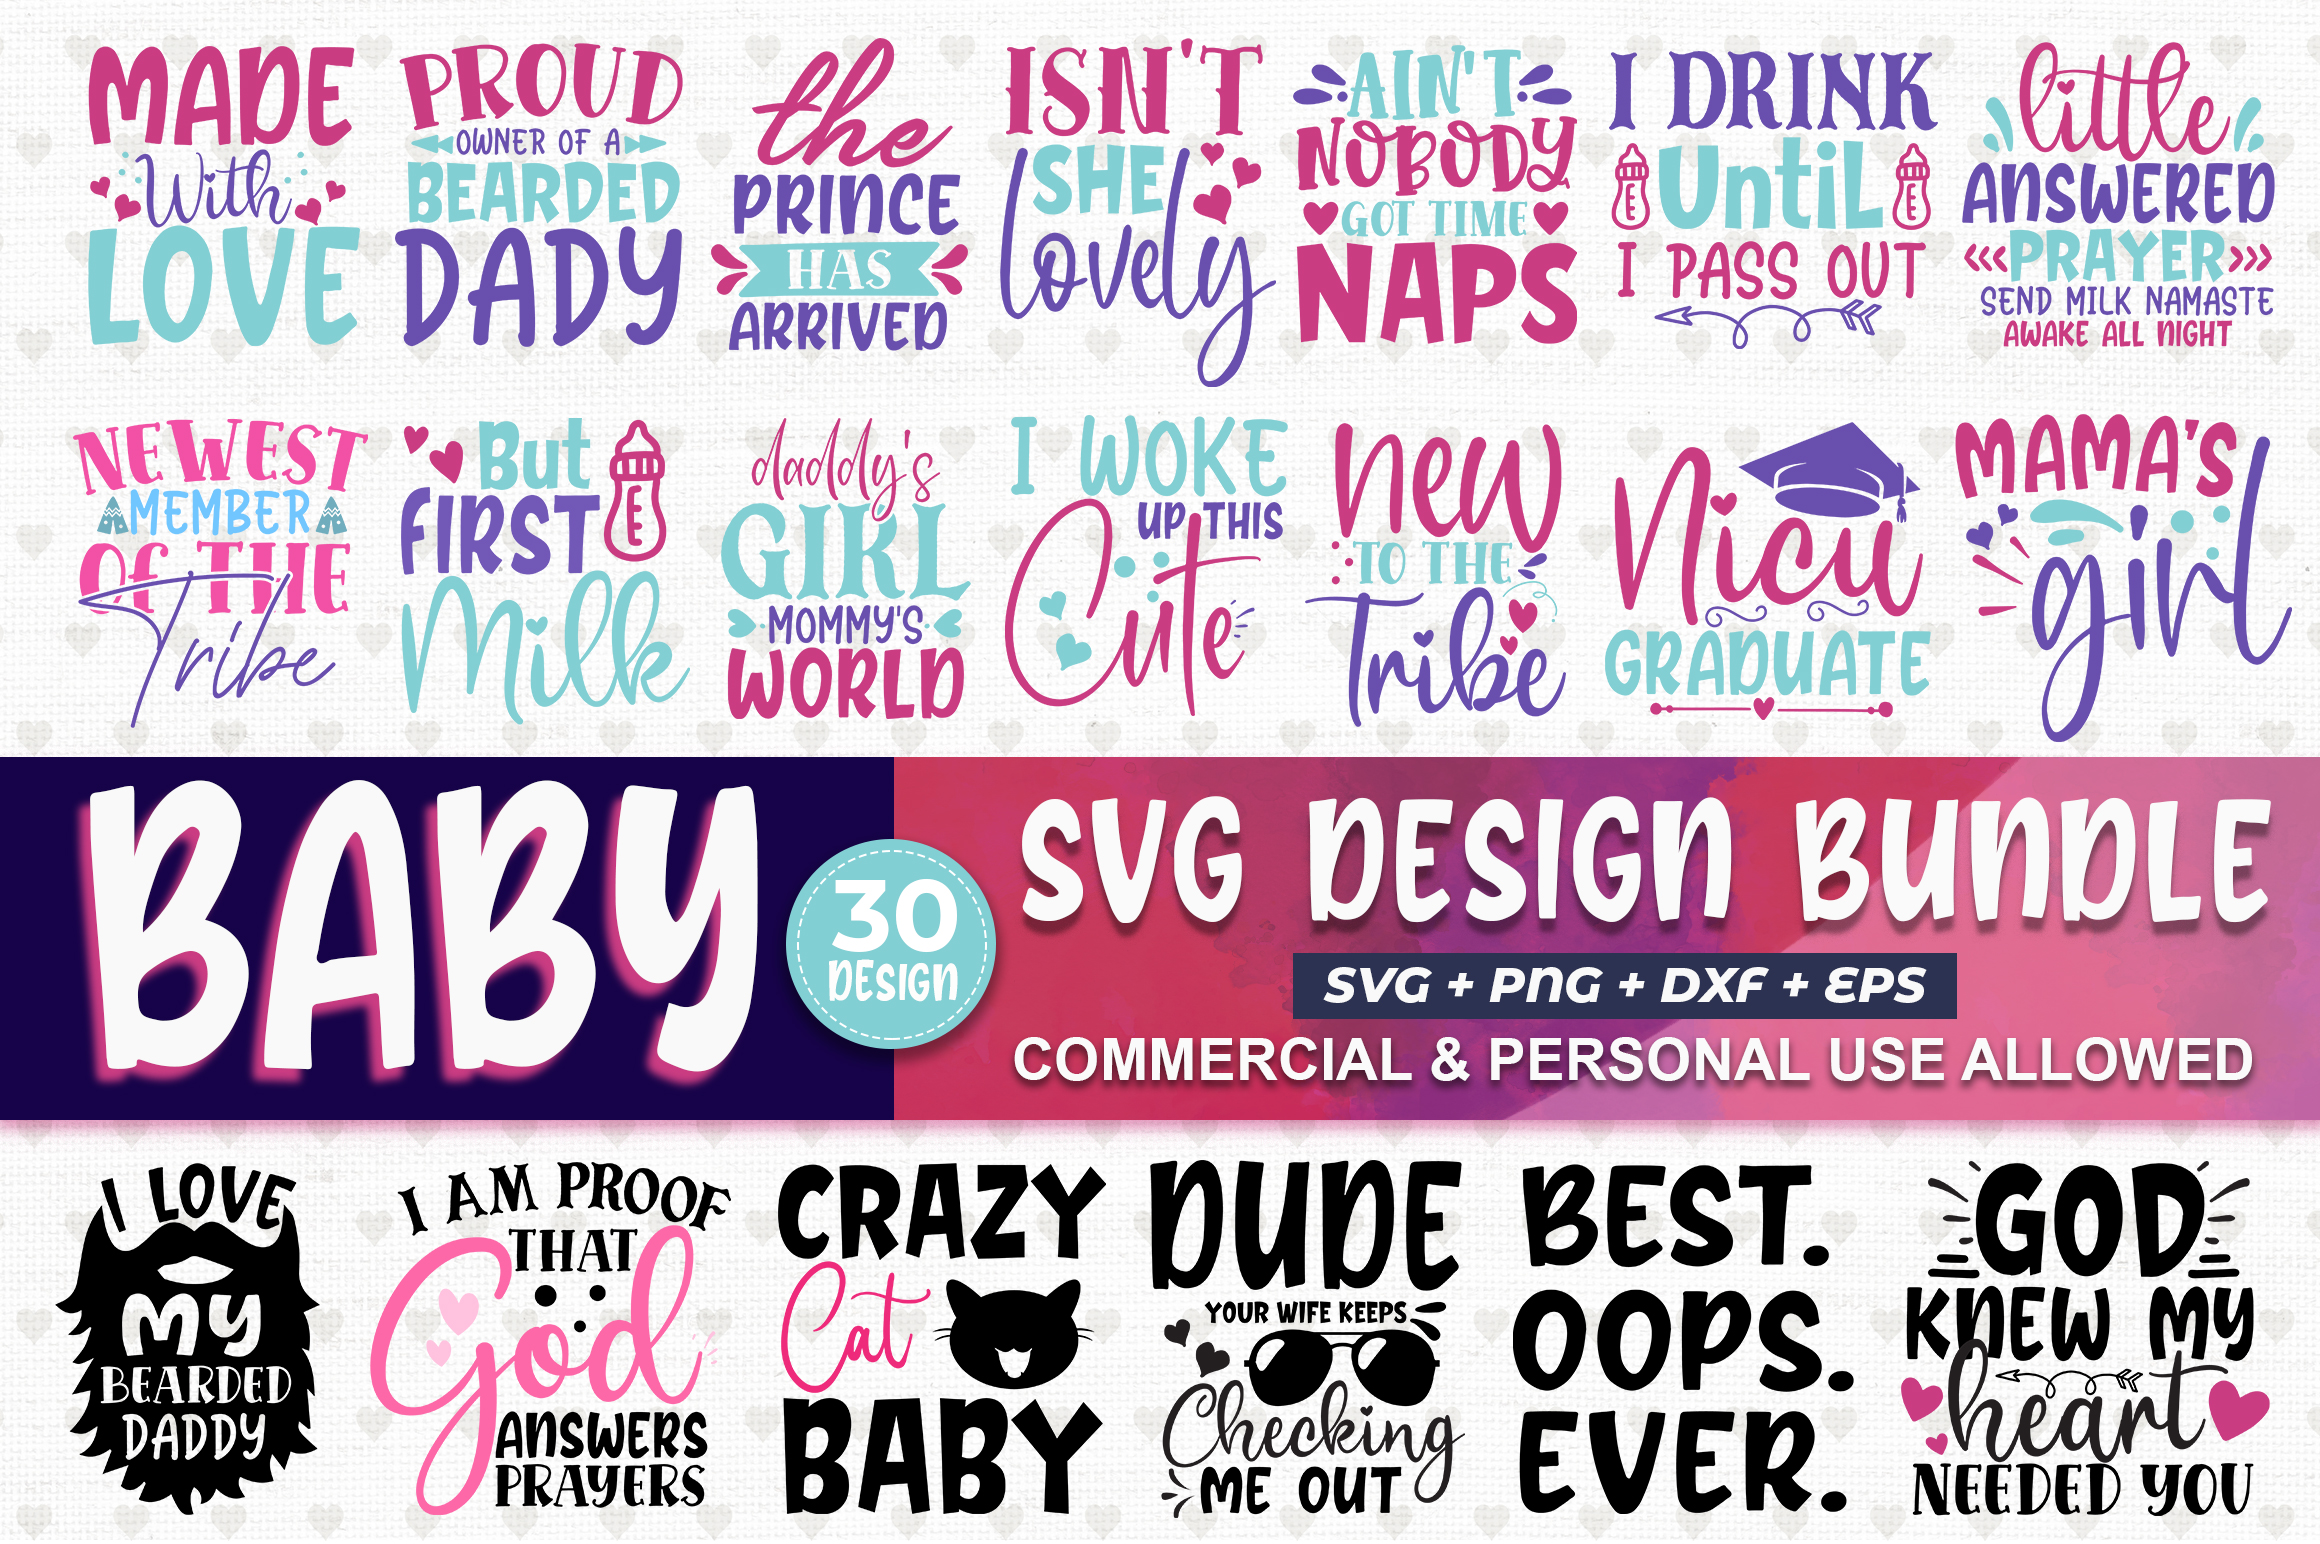 510 SVG DESIGN THE MIGHTY BUNDLE |32 DIFFERENT BUNDLES example image 4